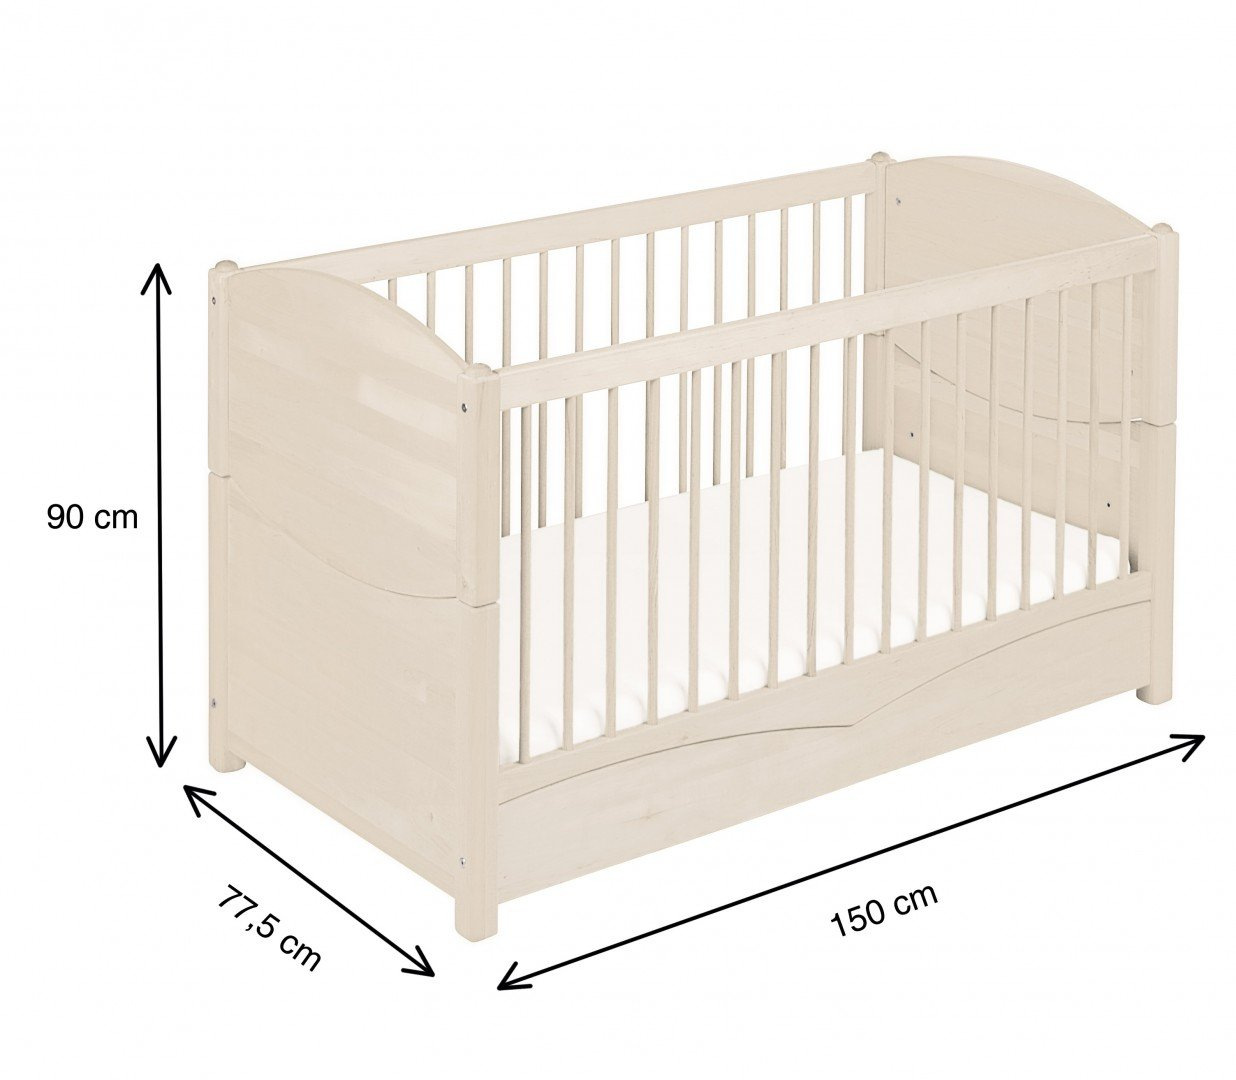 BioKinder 22128 Bed for babies and toddlers Luca from biological wood Bio-Kinder Bed Luca for Babies and Toddlers Adjustable height. 3 removable bars. Various features Sustainable solid biological wood (alder/pine). Biological finish 5